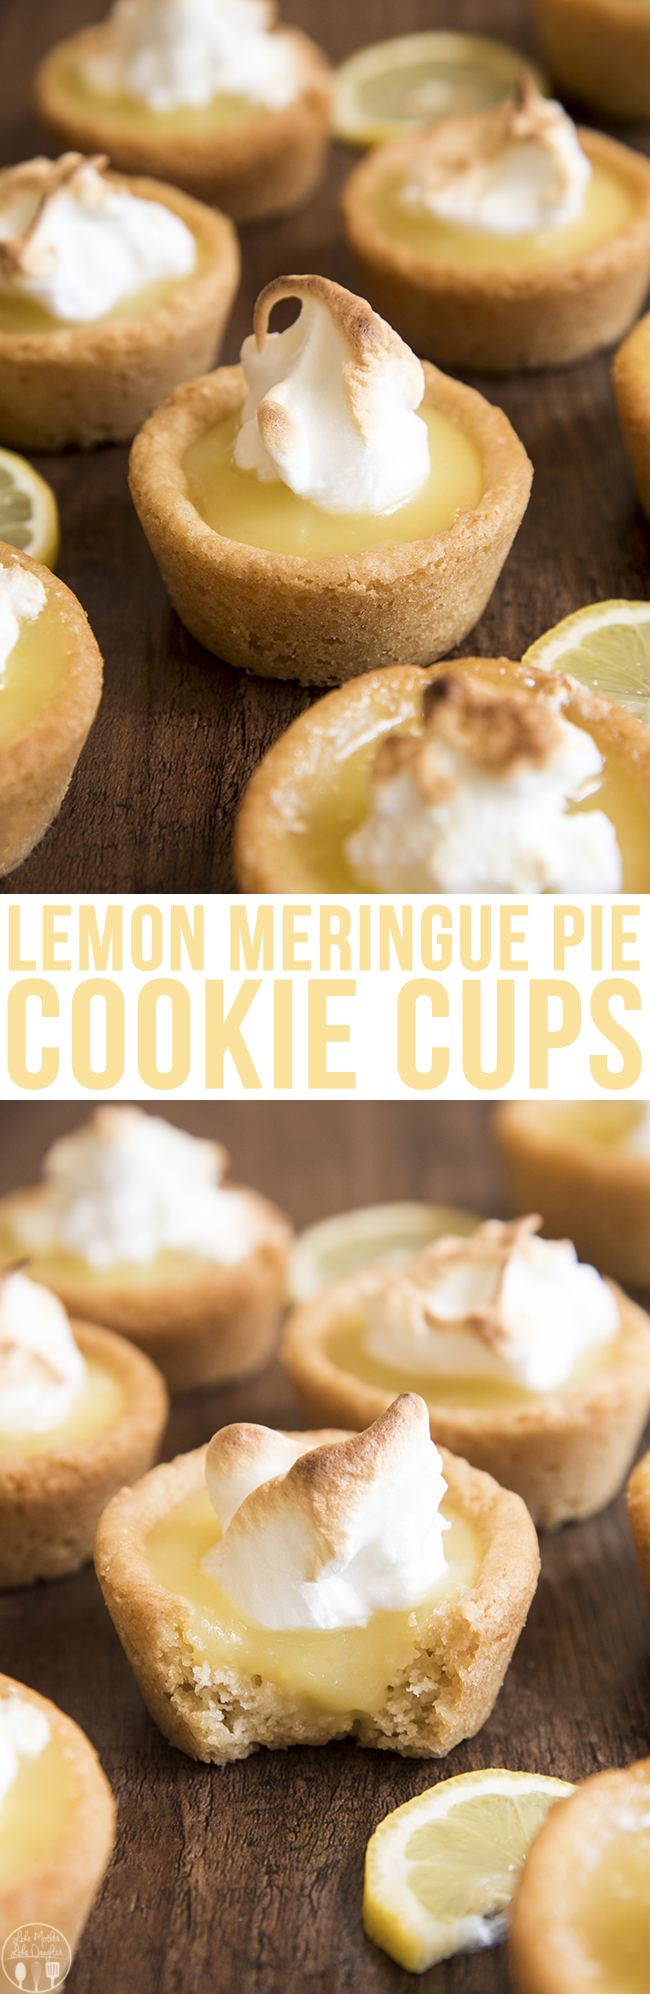 Lemon Meringue Pie Cookie Cups - These lemon meringue pie cookie cups start with a sugar cookie base, lemon curd filling and a quick meringue topping for a perfect refreshing dessert. You won't be able to stop after just one!